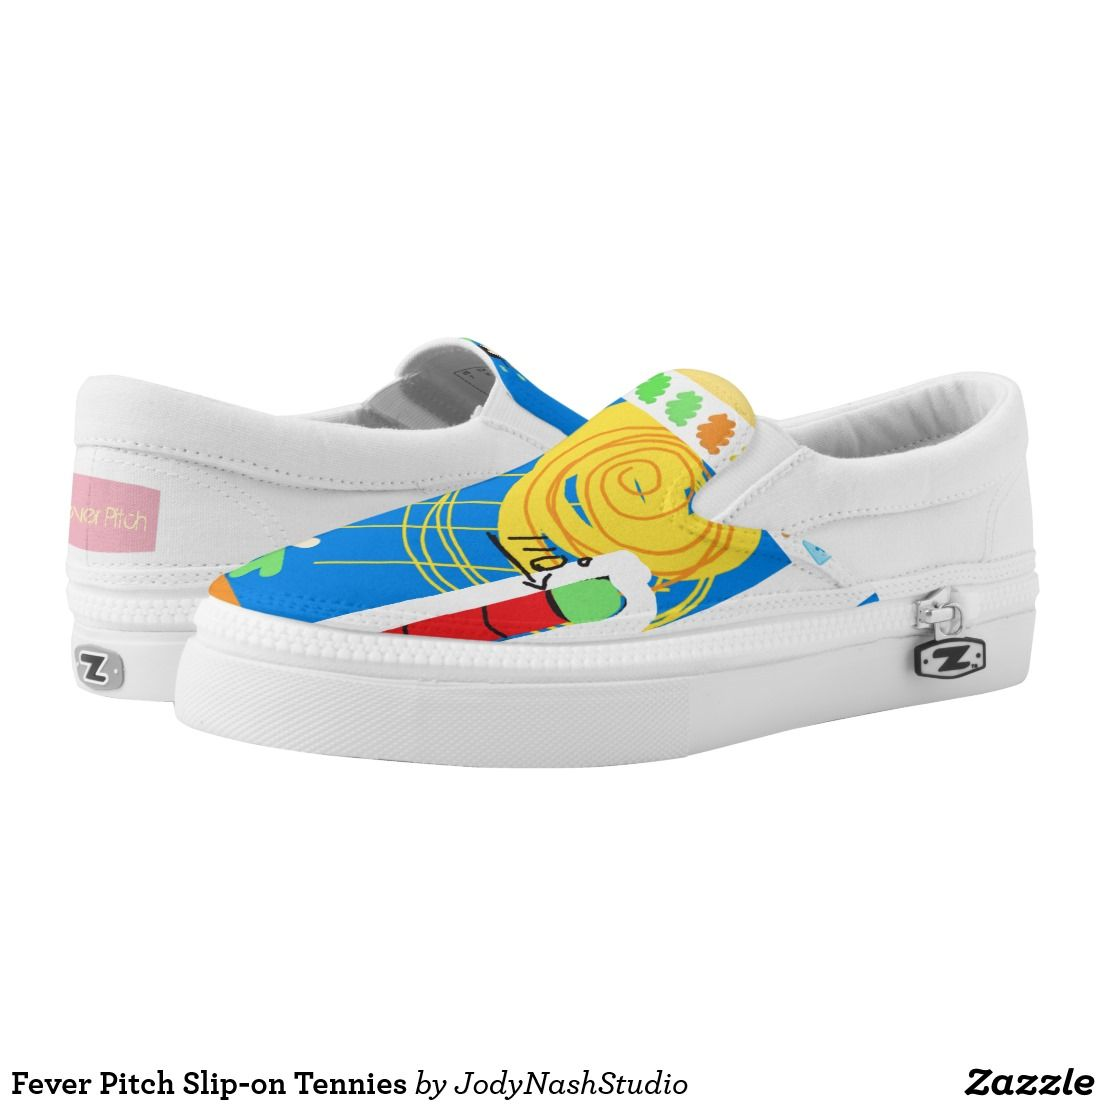 Fever Pitch Slip-on Tennies